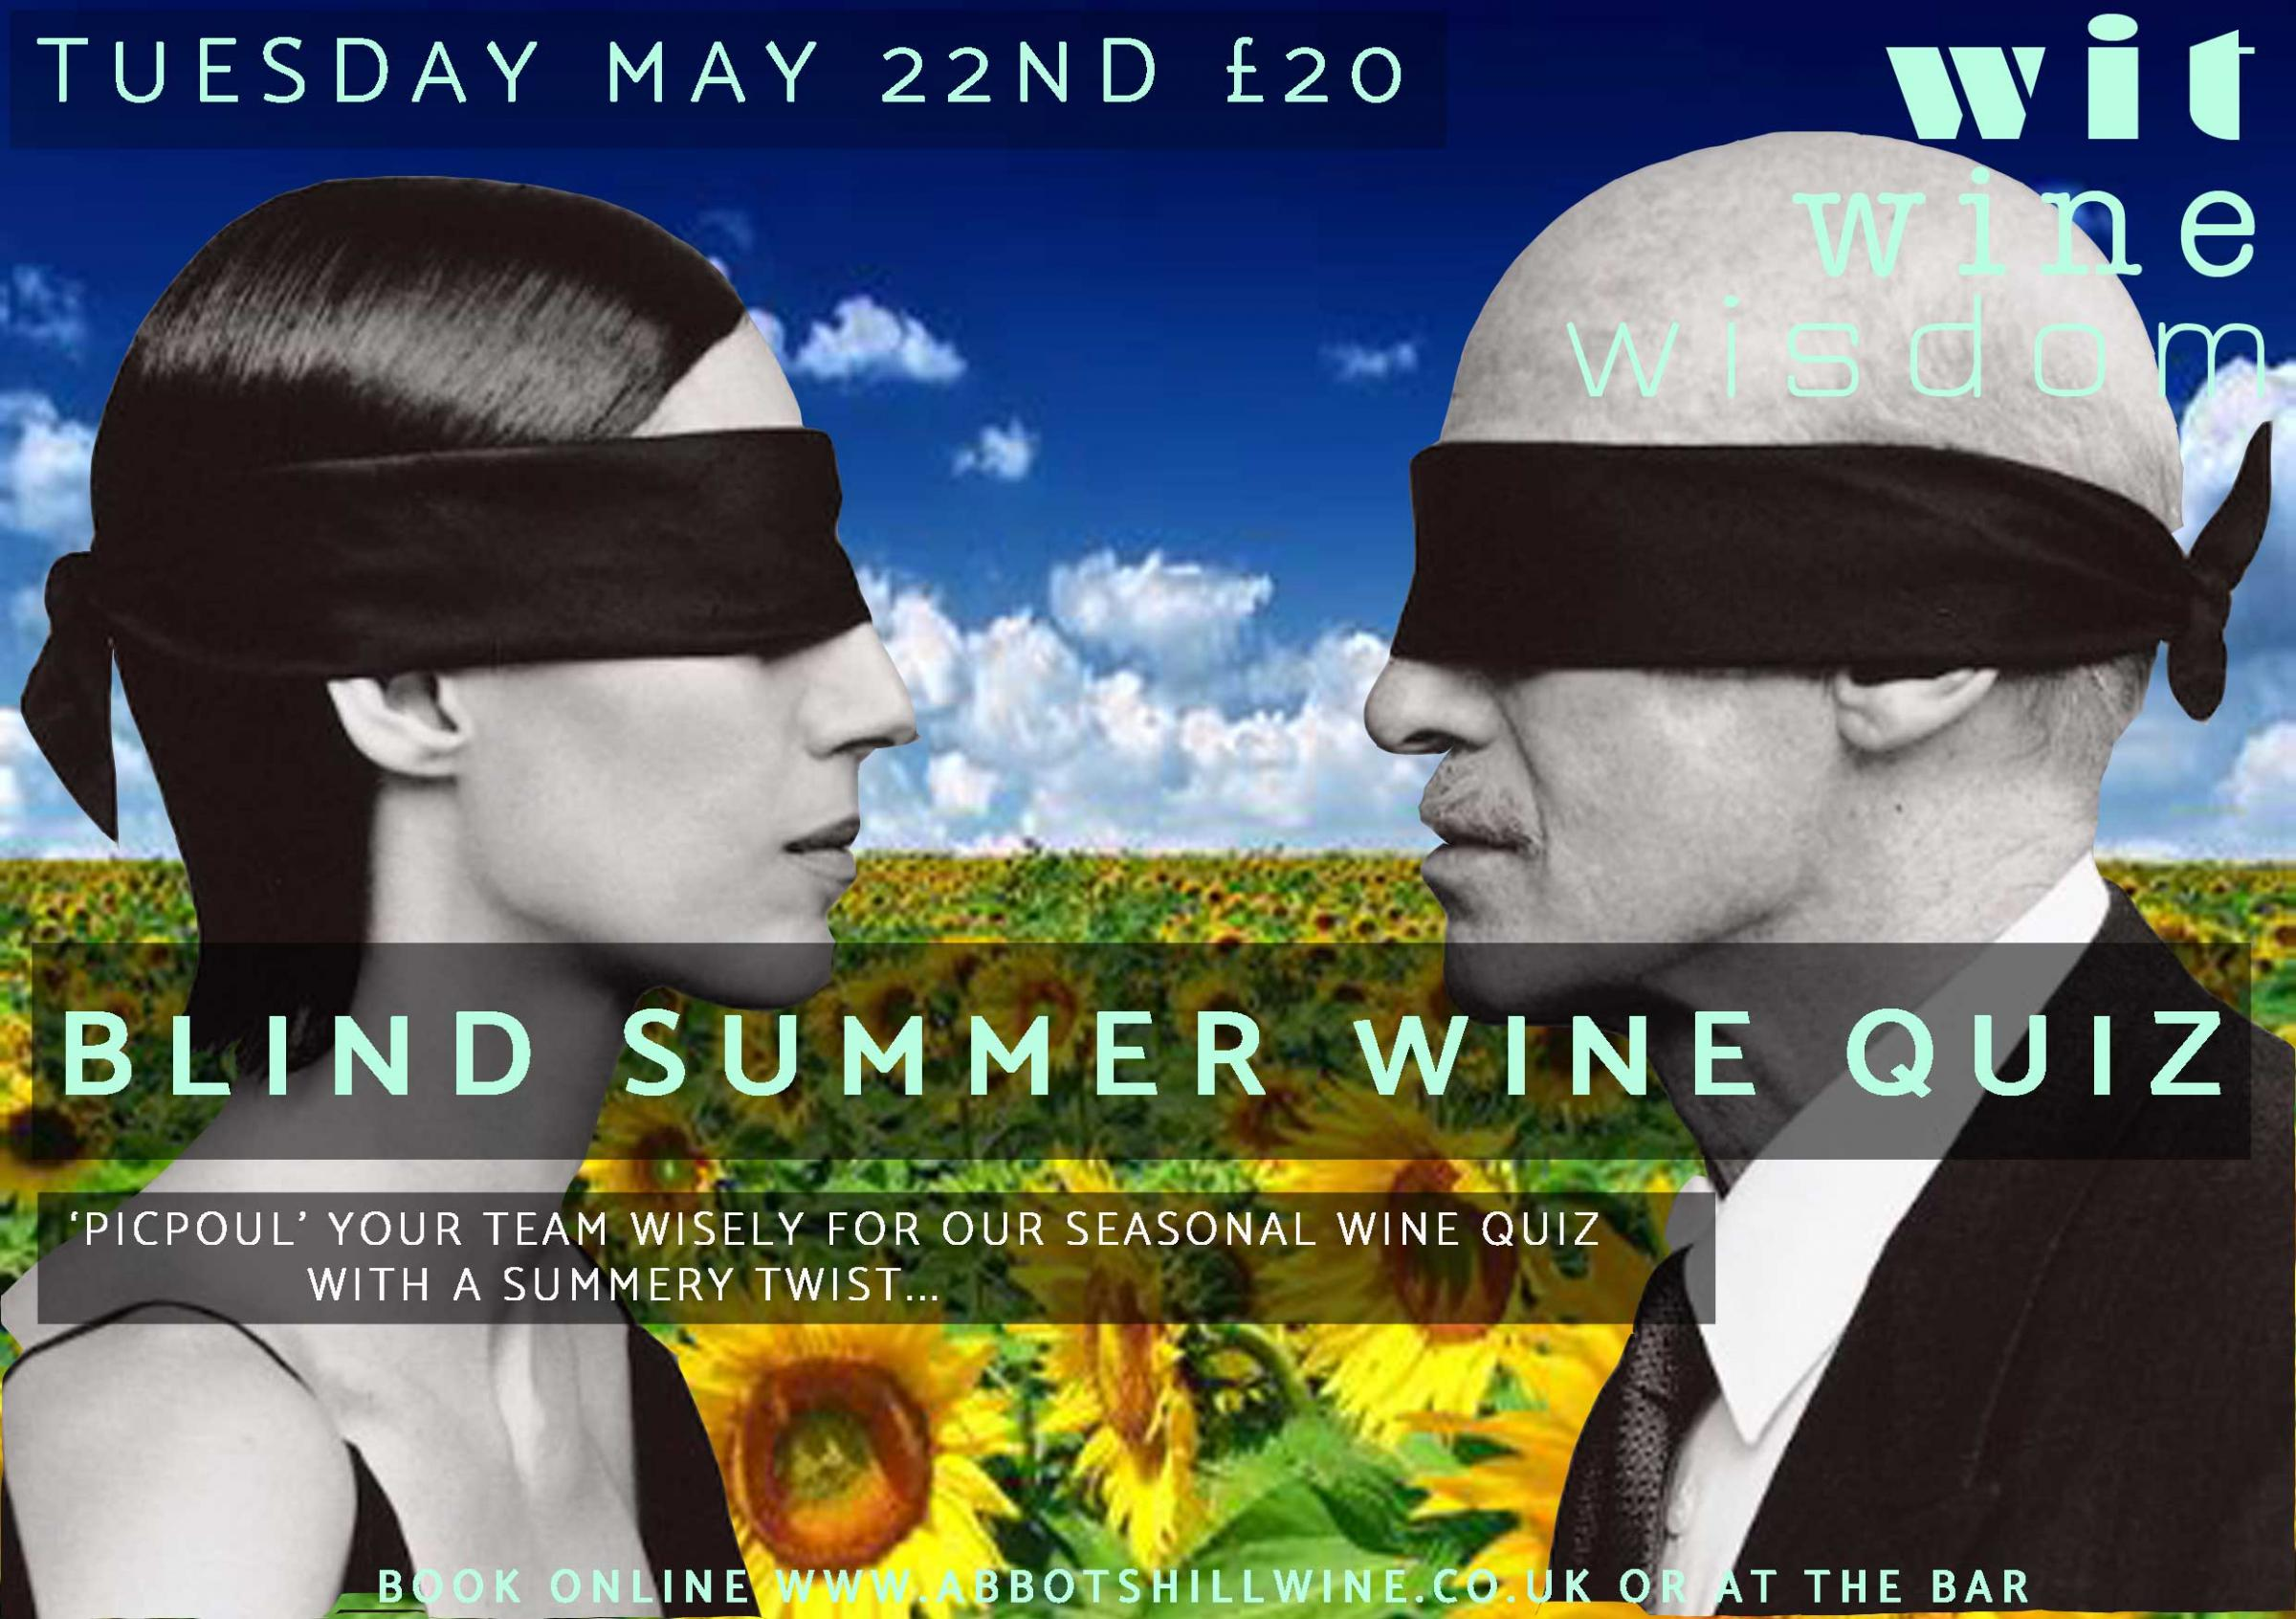 BLIND SUMMER WINE QUIZ